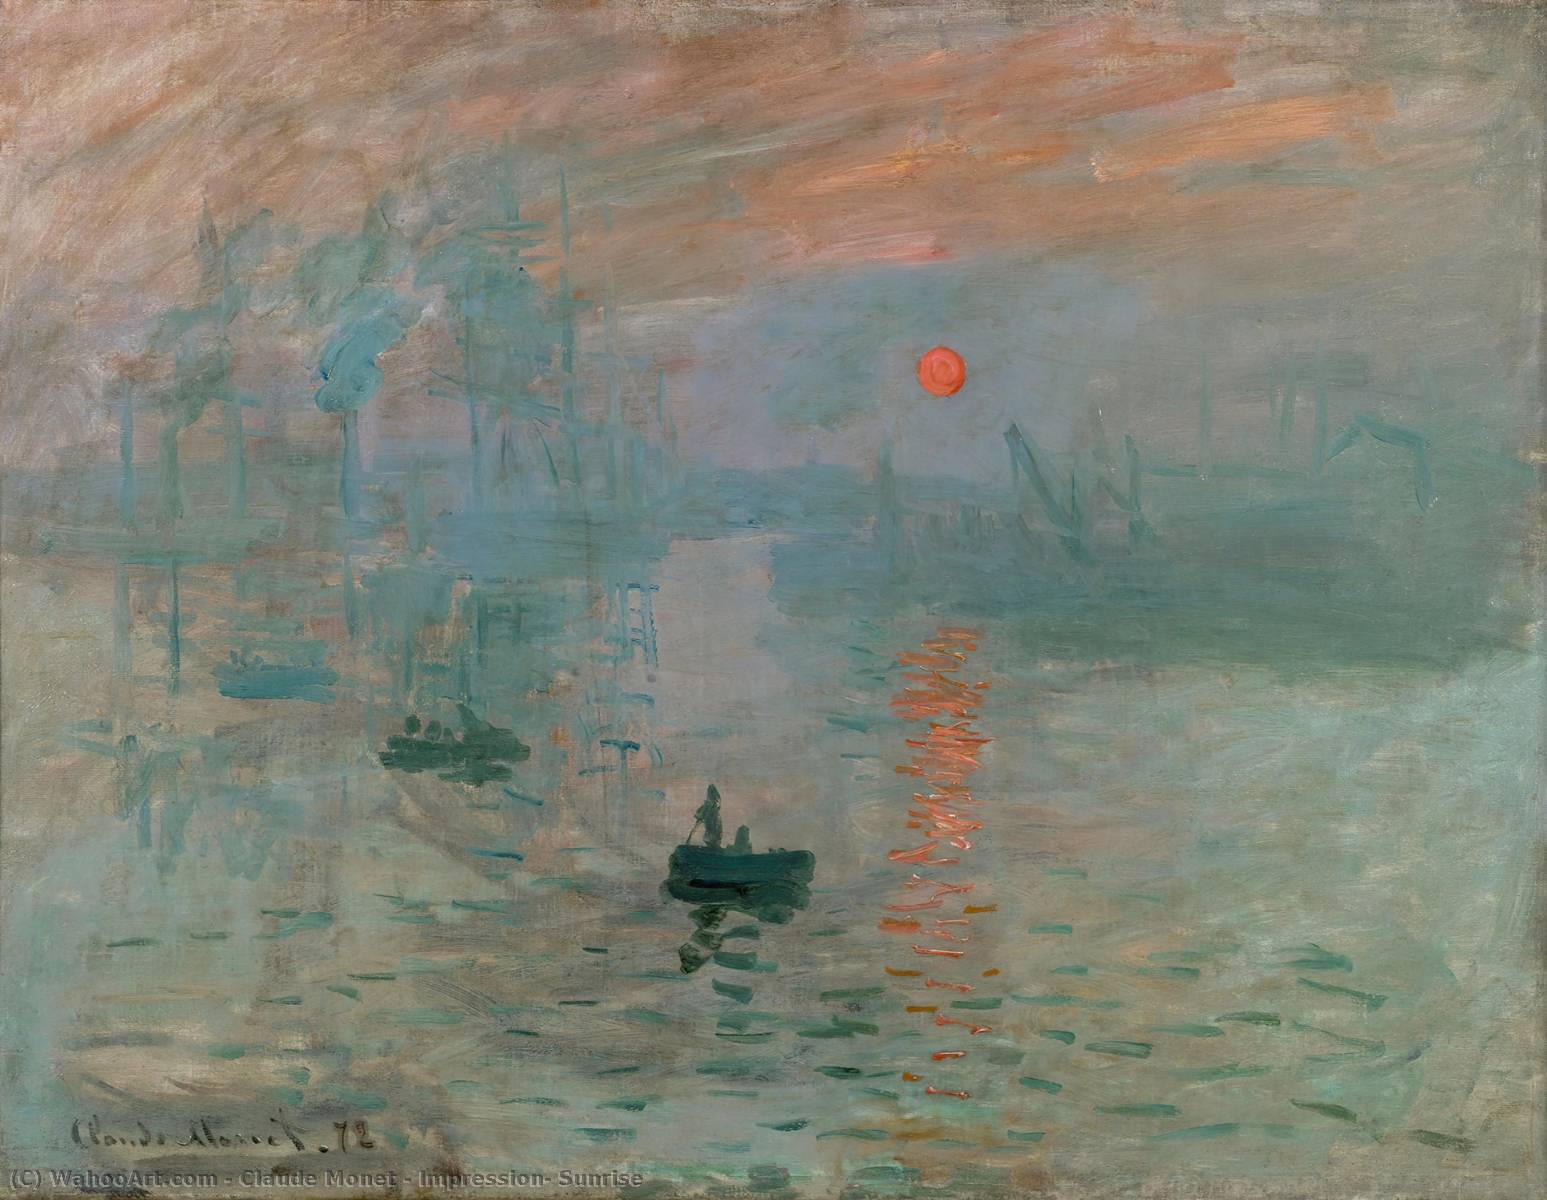 famous painting Impresión , Amanecer of Claude Monet